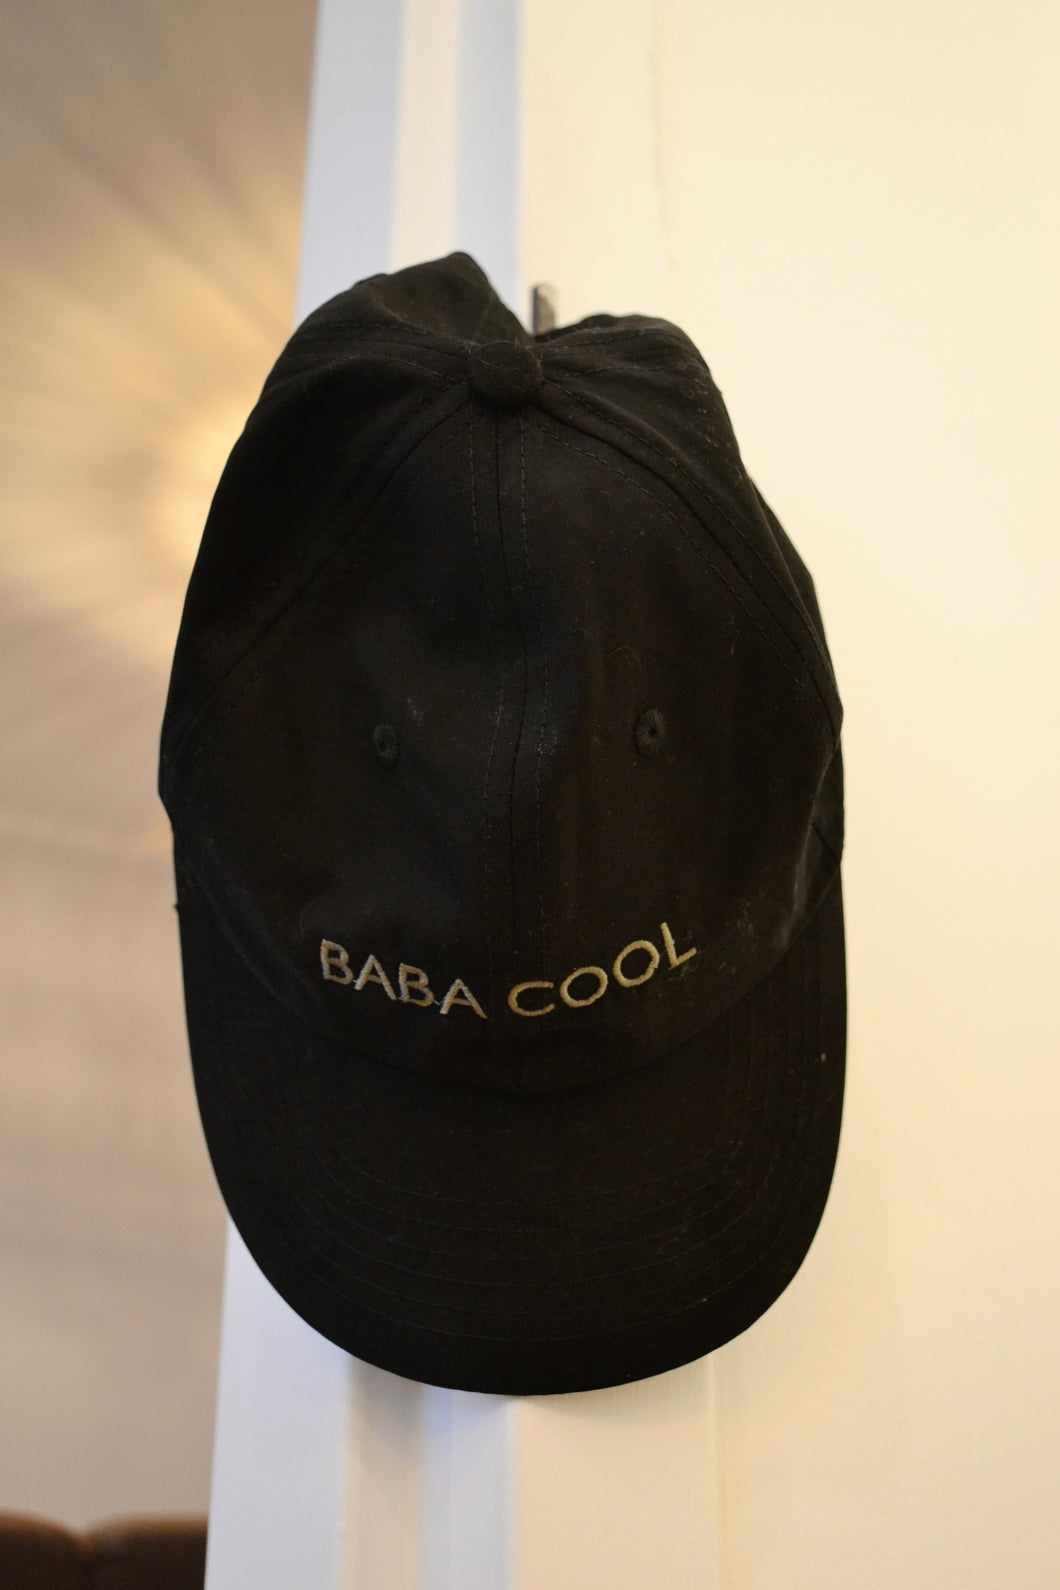 NOMADPAULETTE l BABA COOL CAP BLACK EMBROIDED